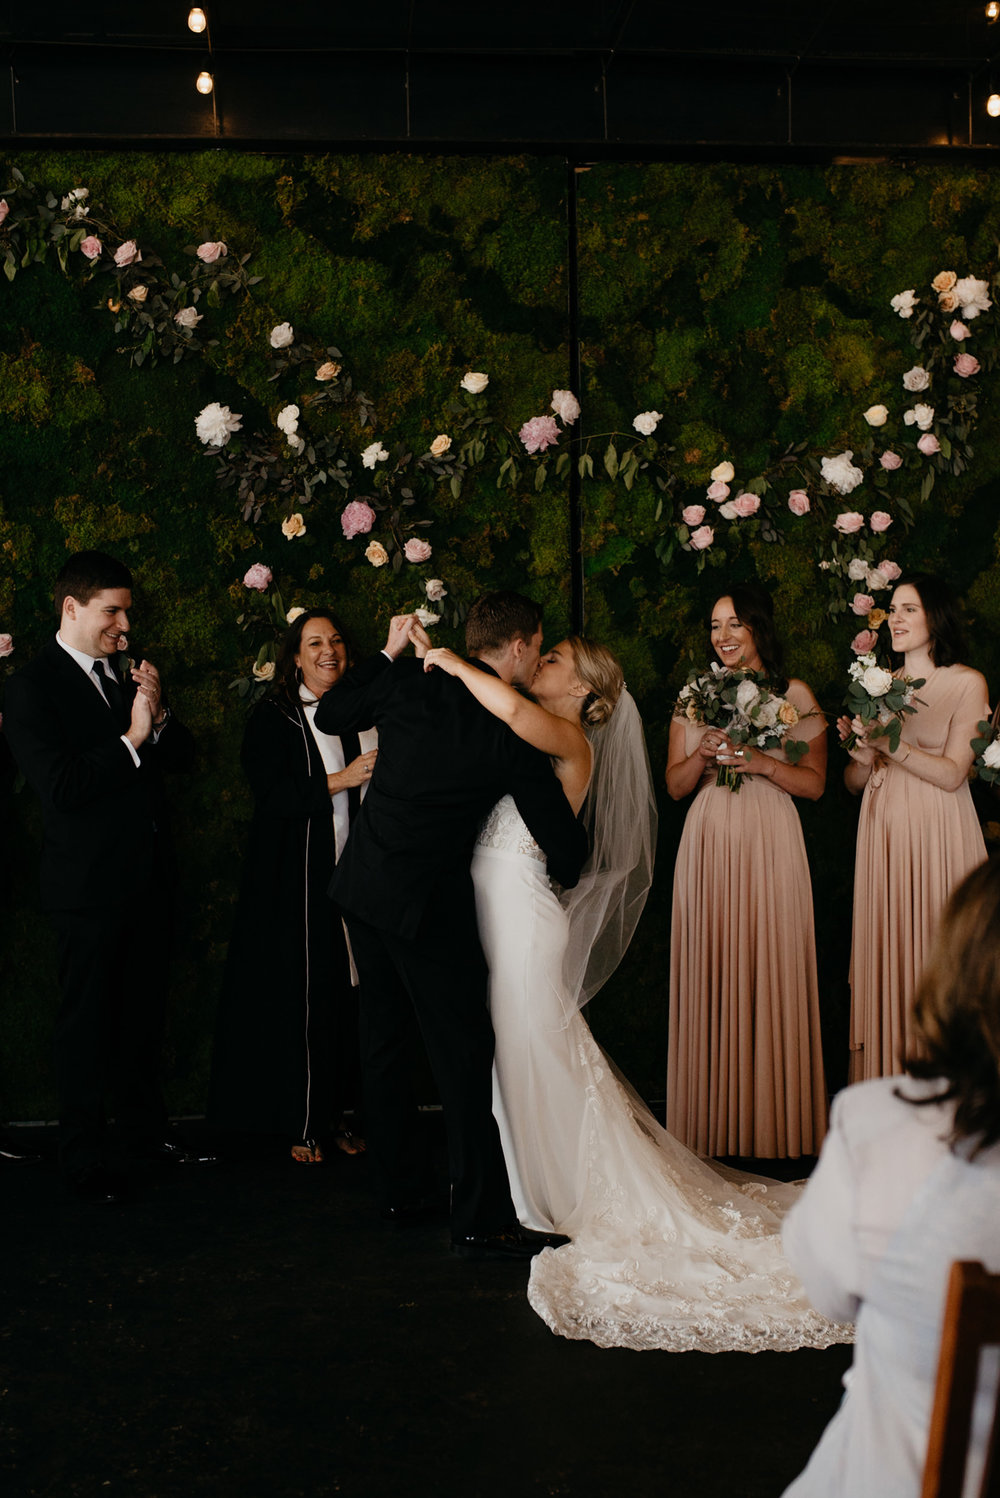 First kiss at Moss Denver wedding. Colorado wedding photographer.